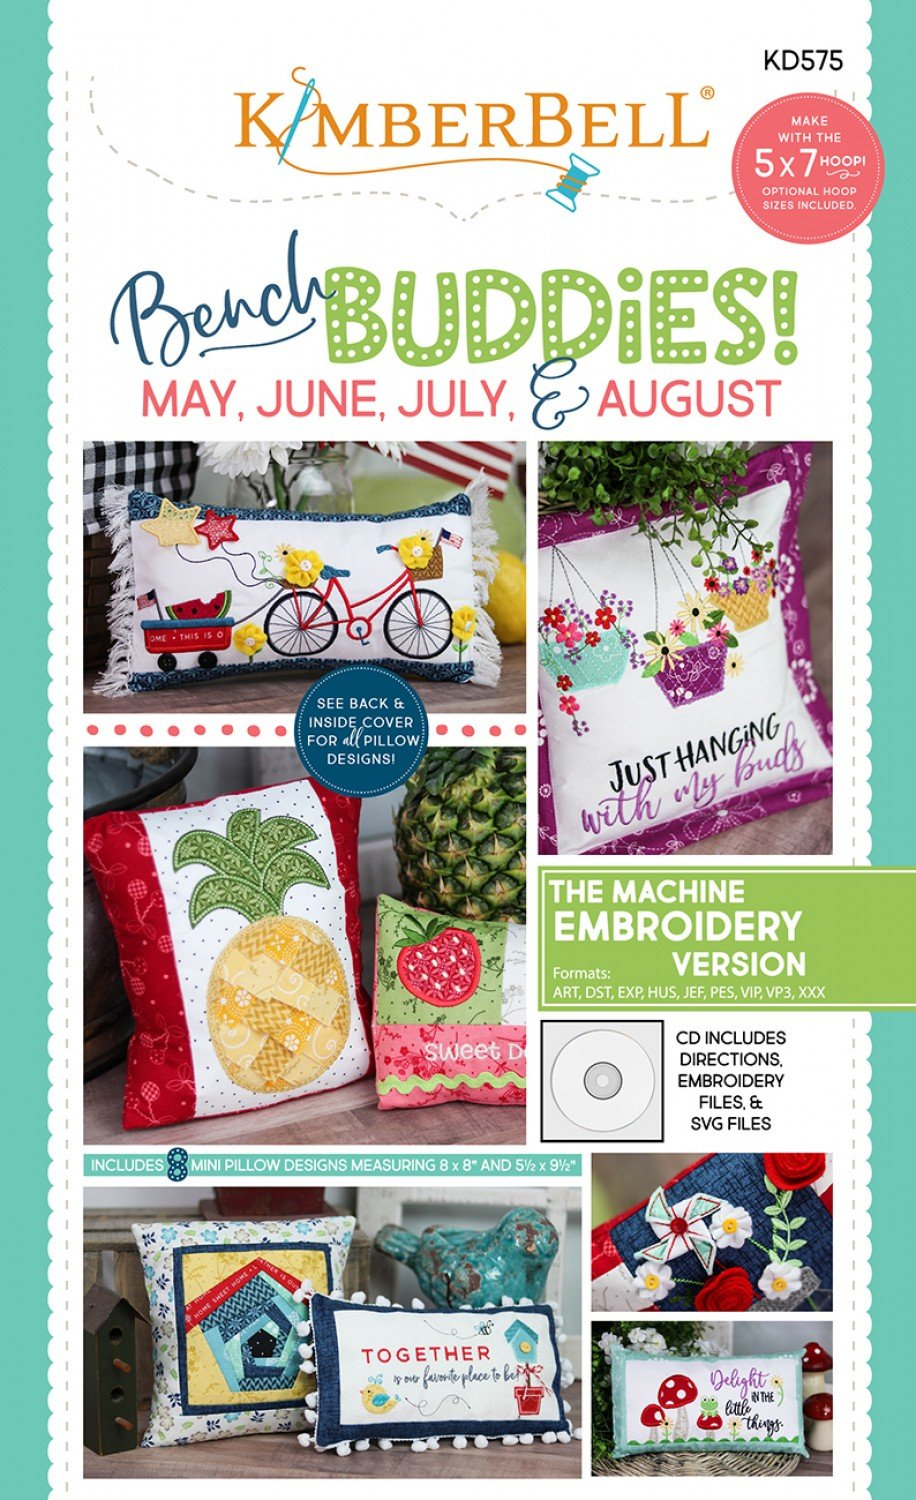 Kimberbell Bench Buddies Series May - August Machine Embroidery CD KD575